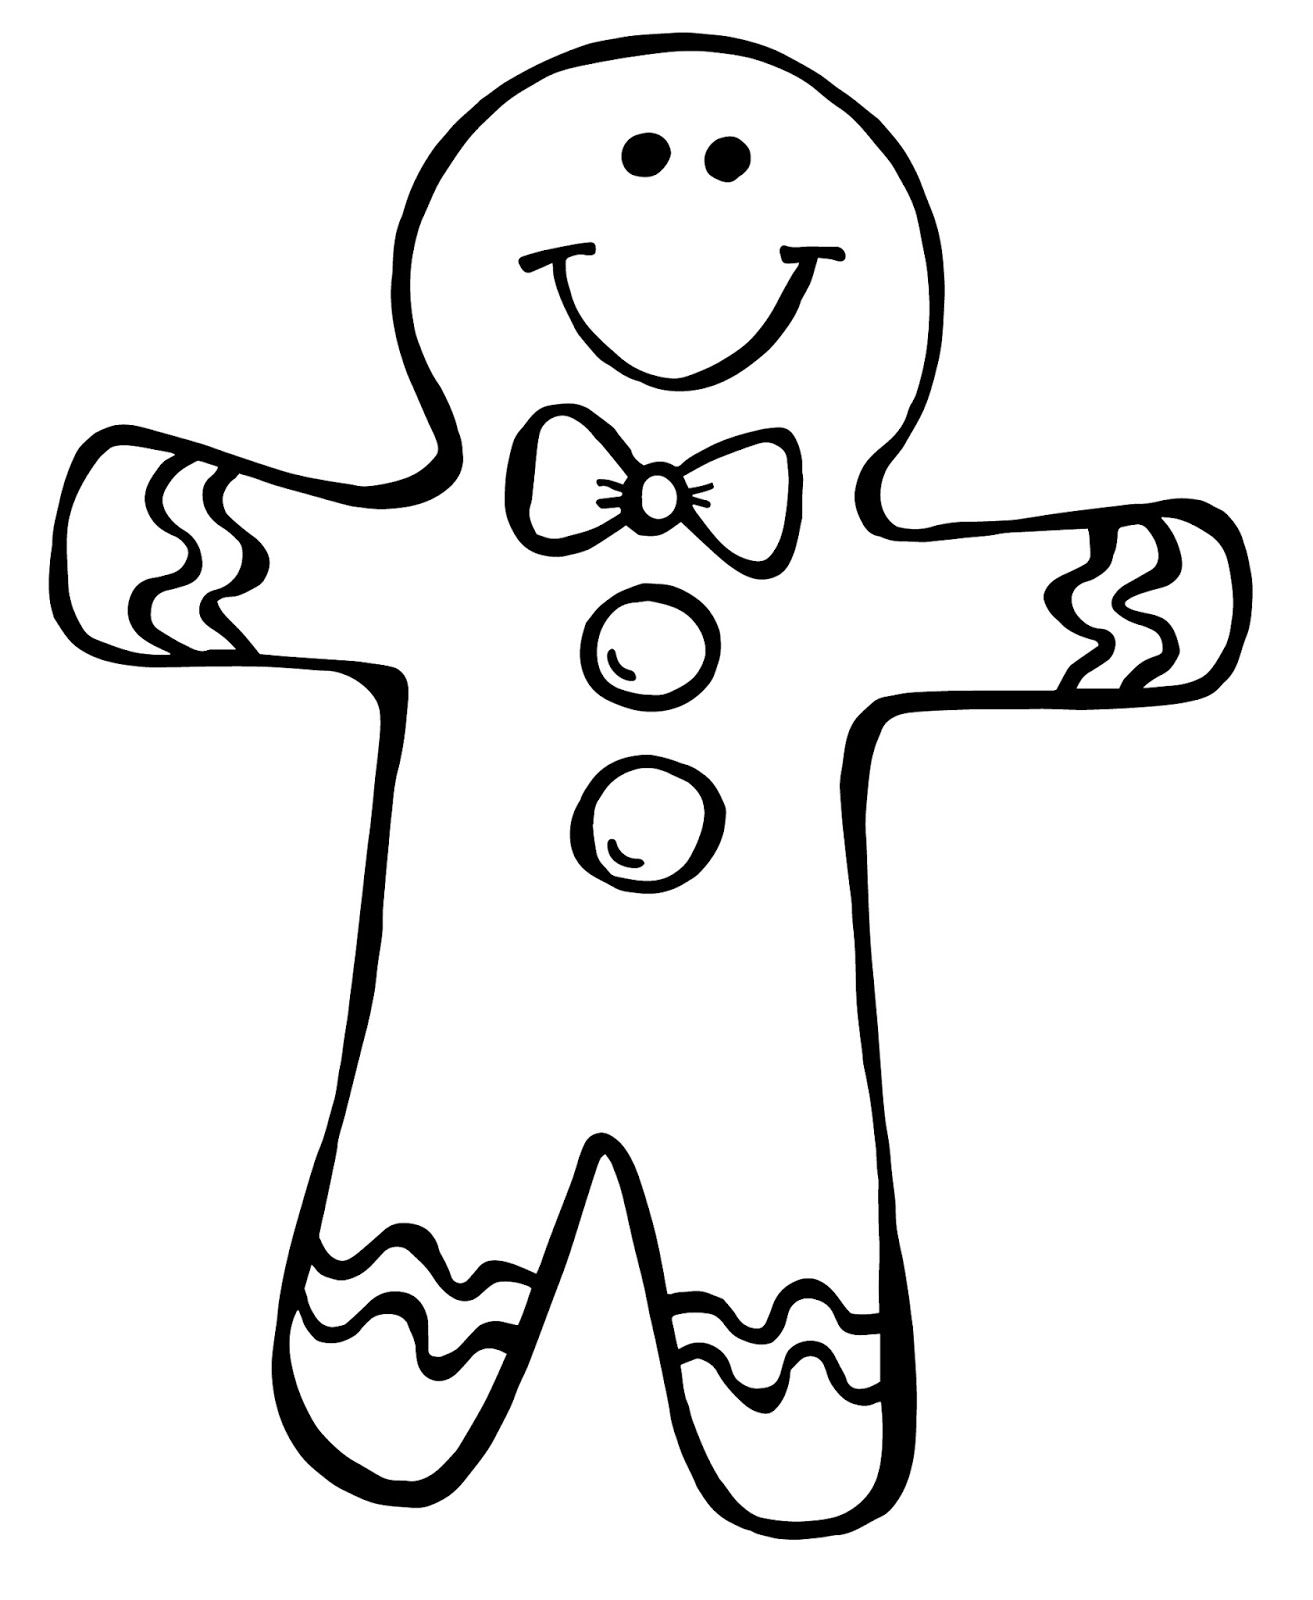 Girl and boy clipart black and white free svg black and white library FREE Gingerbread Boy & Girl Clipart   december   Girl clipart ... svg black and white library